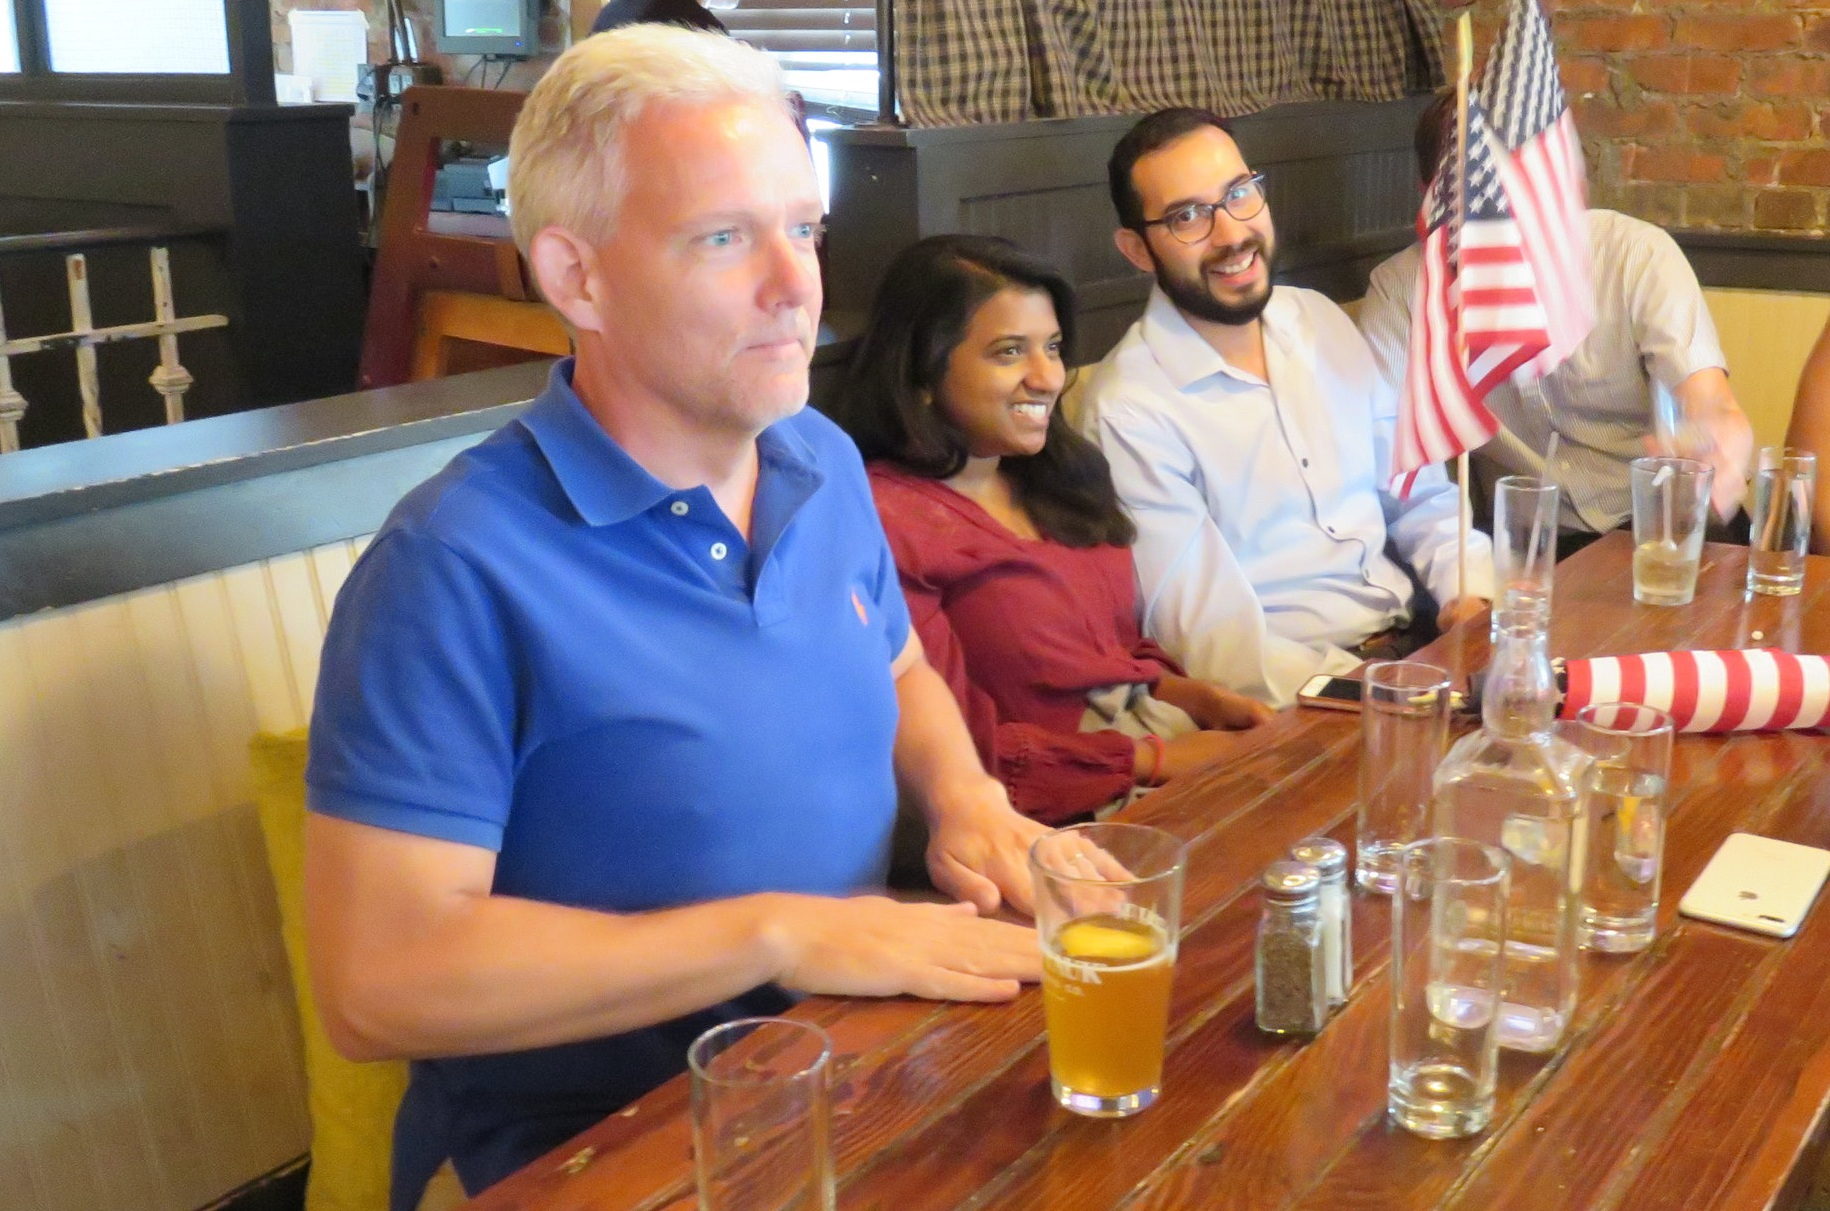 Van Bramer and his staff watched the U.S. Women's National Team in the semifinals of the World Cup at a bar in Sunnyside.  Eagle  photo by David Brand